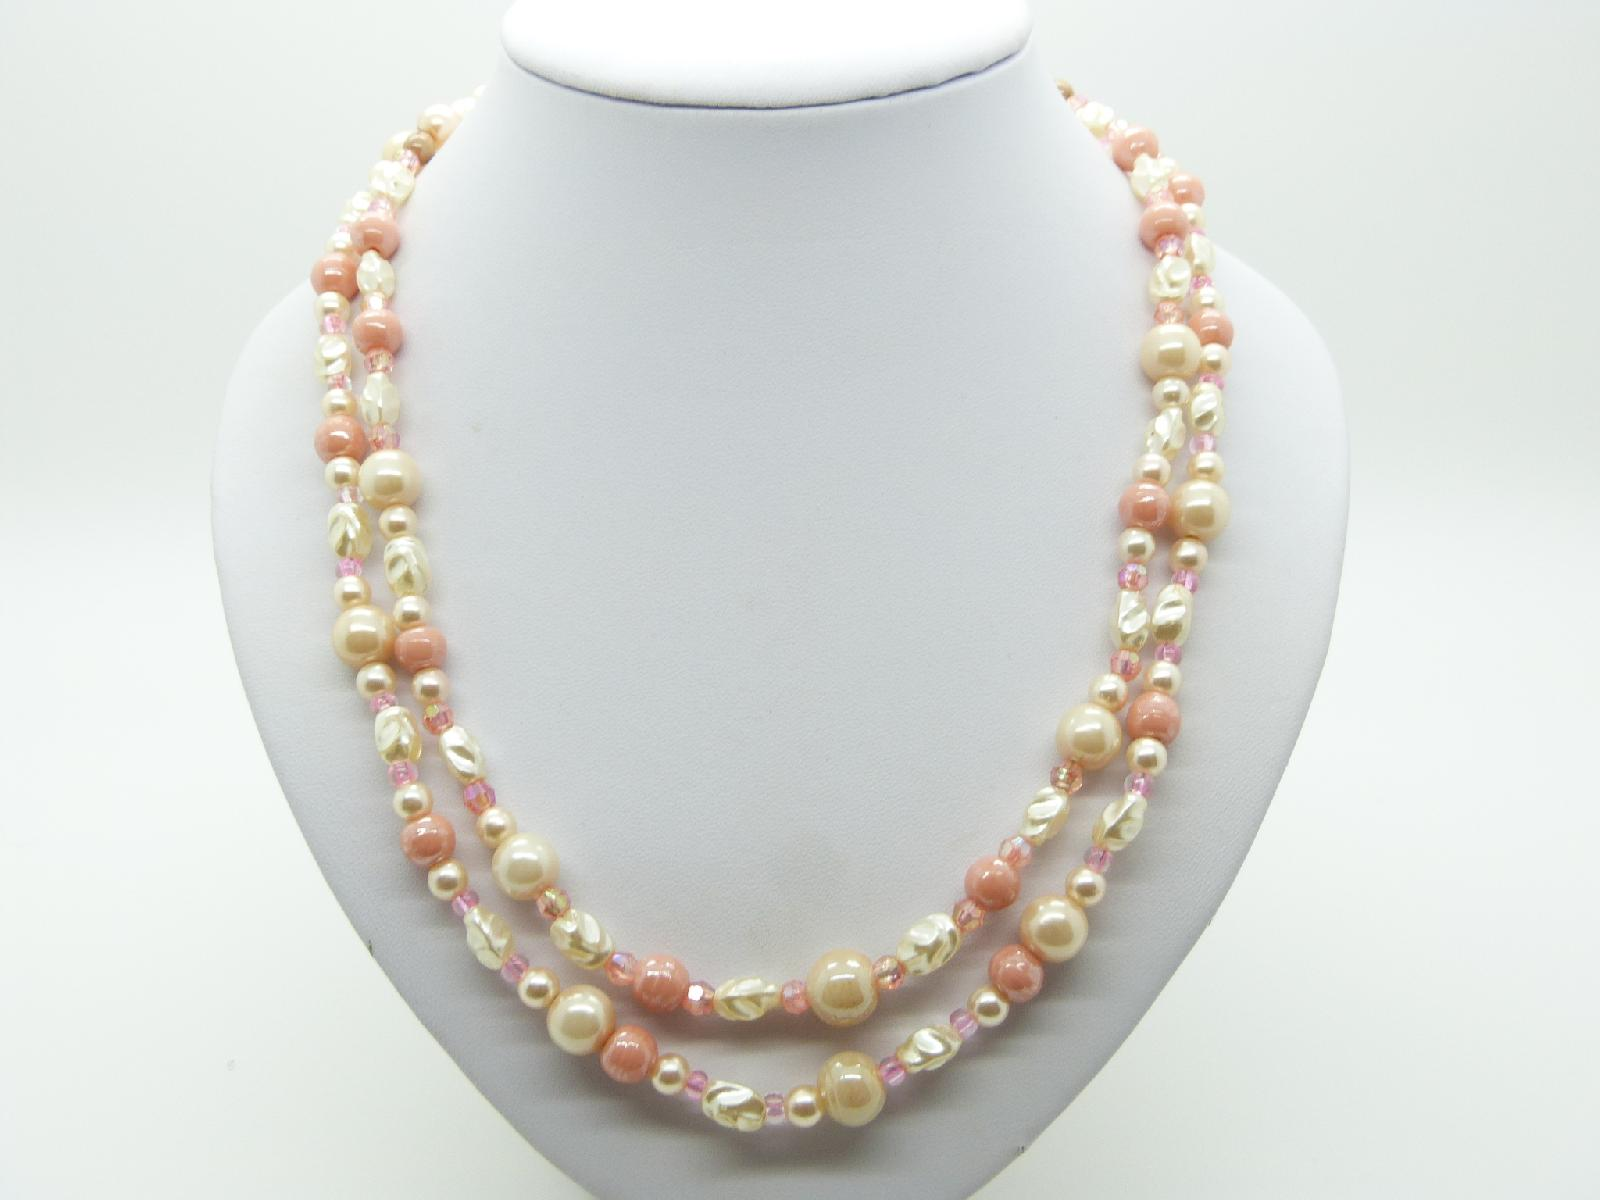 £17.00 - Vintage 50s Two Row Pink and White Glass and Lucite Bead Necklace 57cms